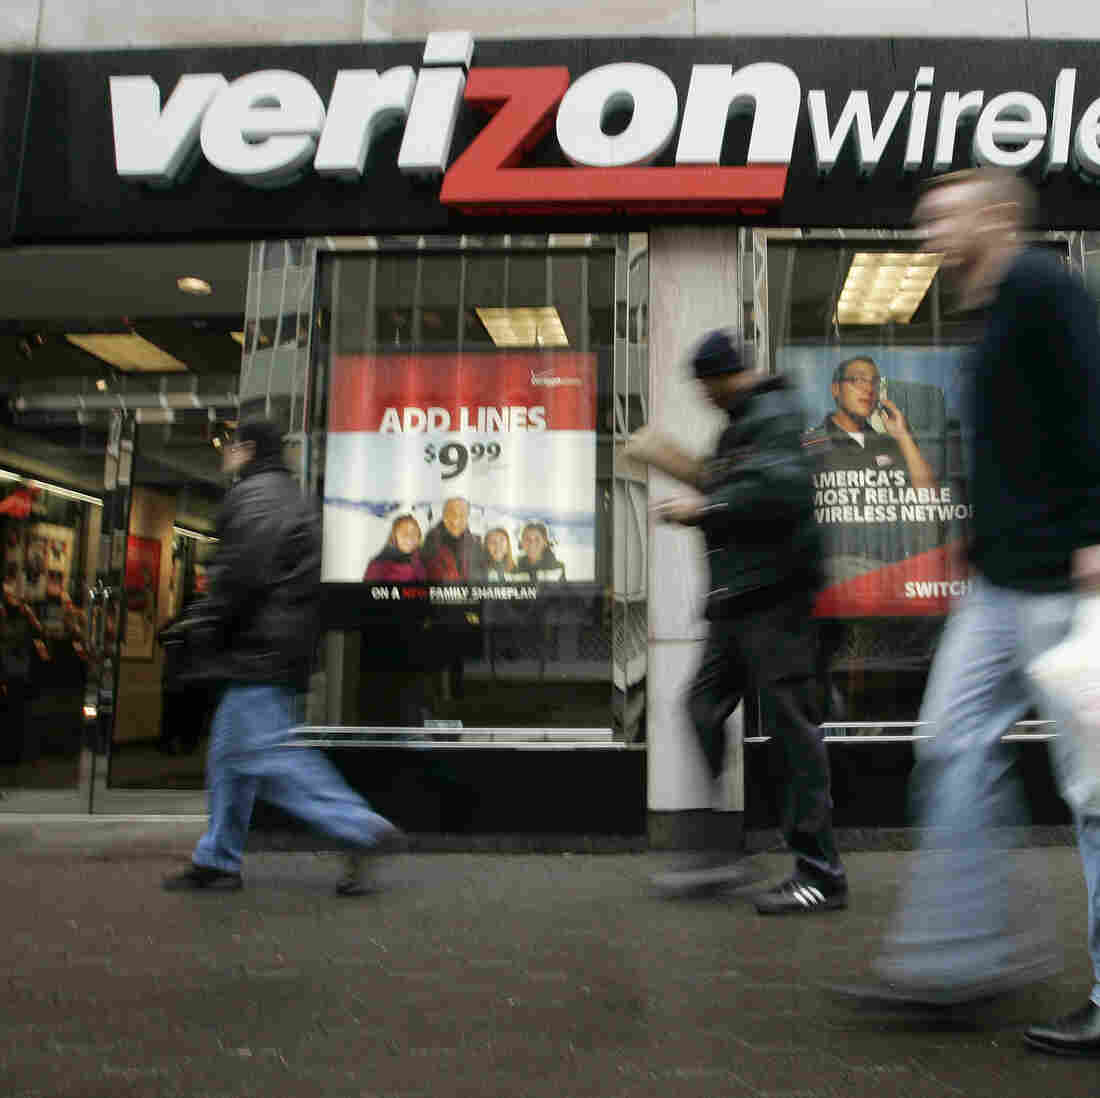 Pedestrians walk past a Verizon Wireless shop.